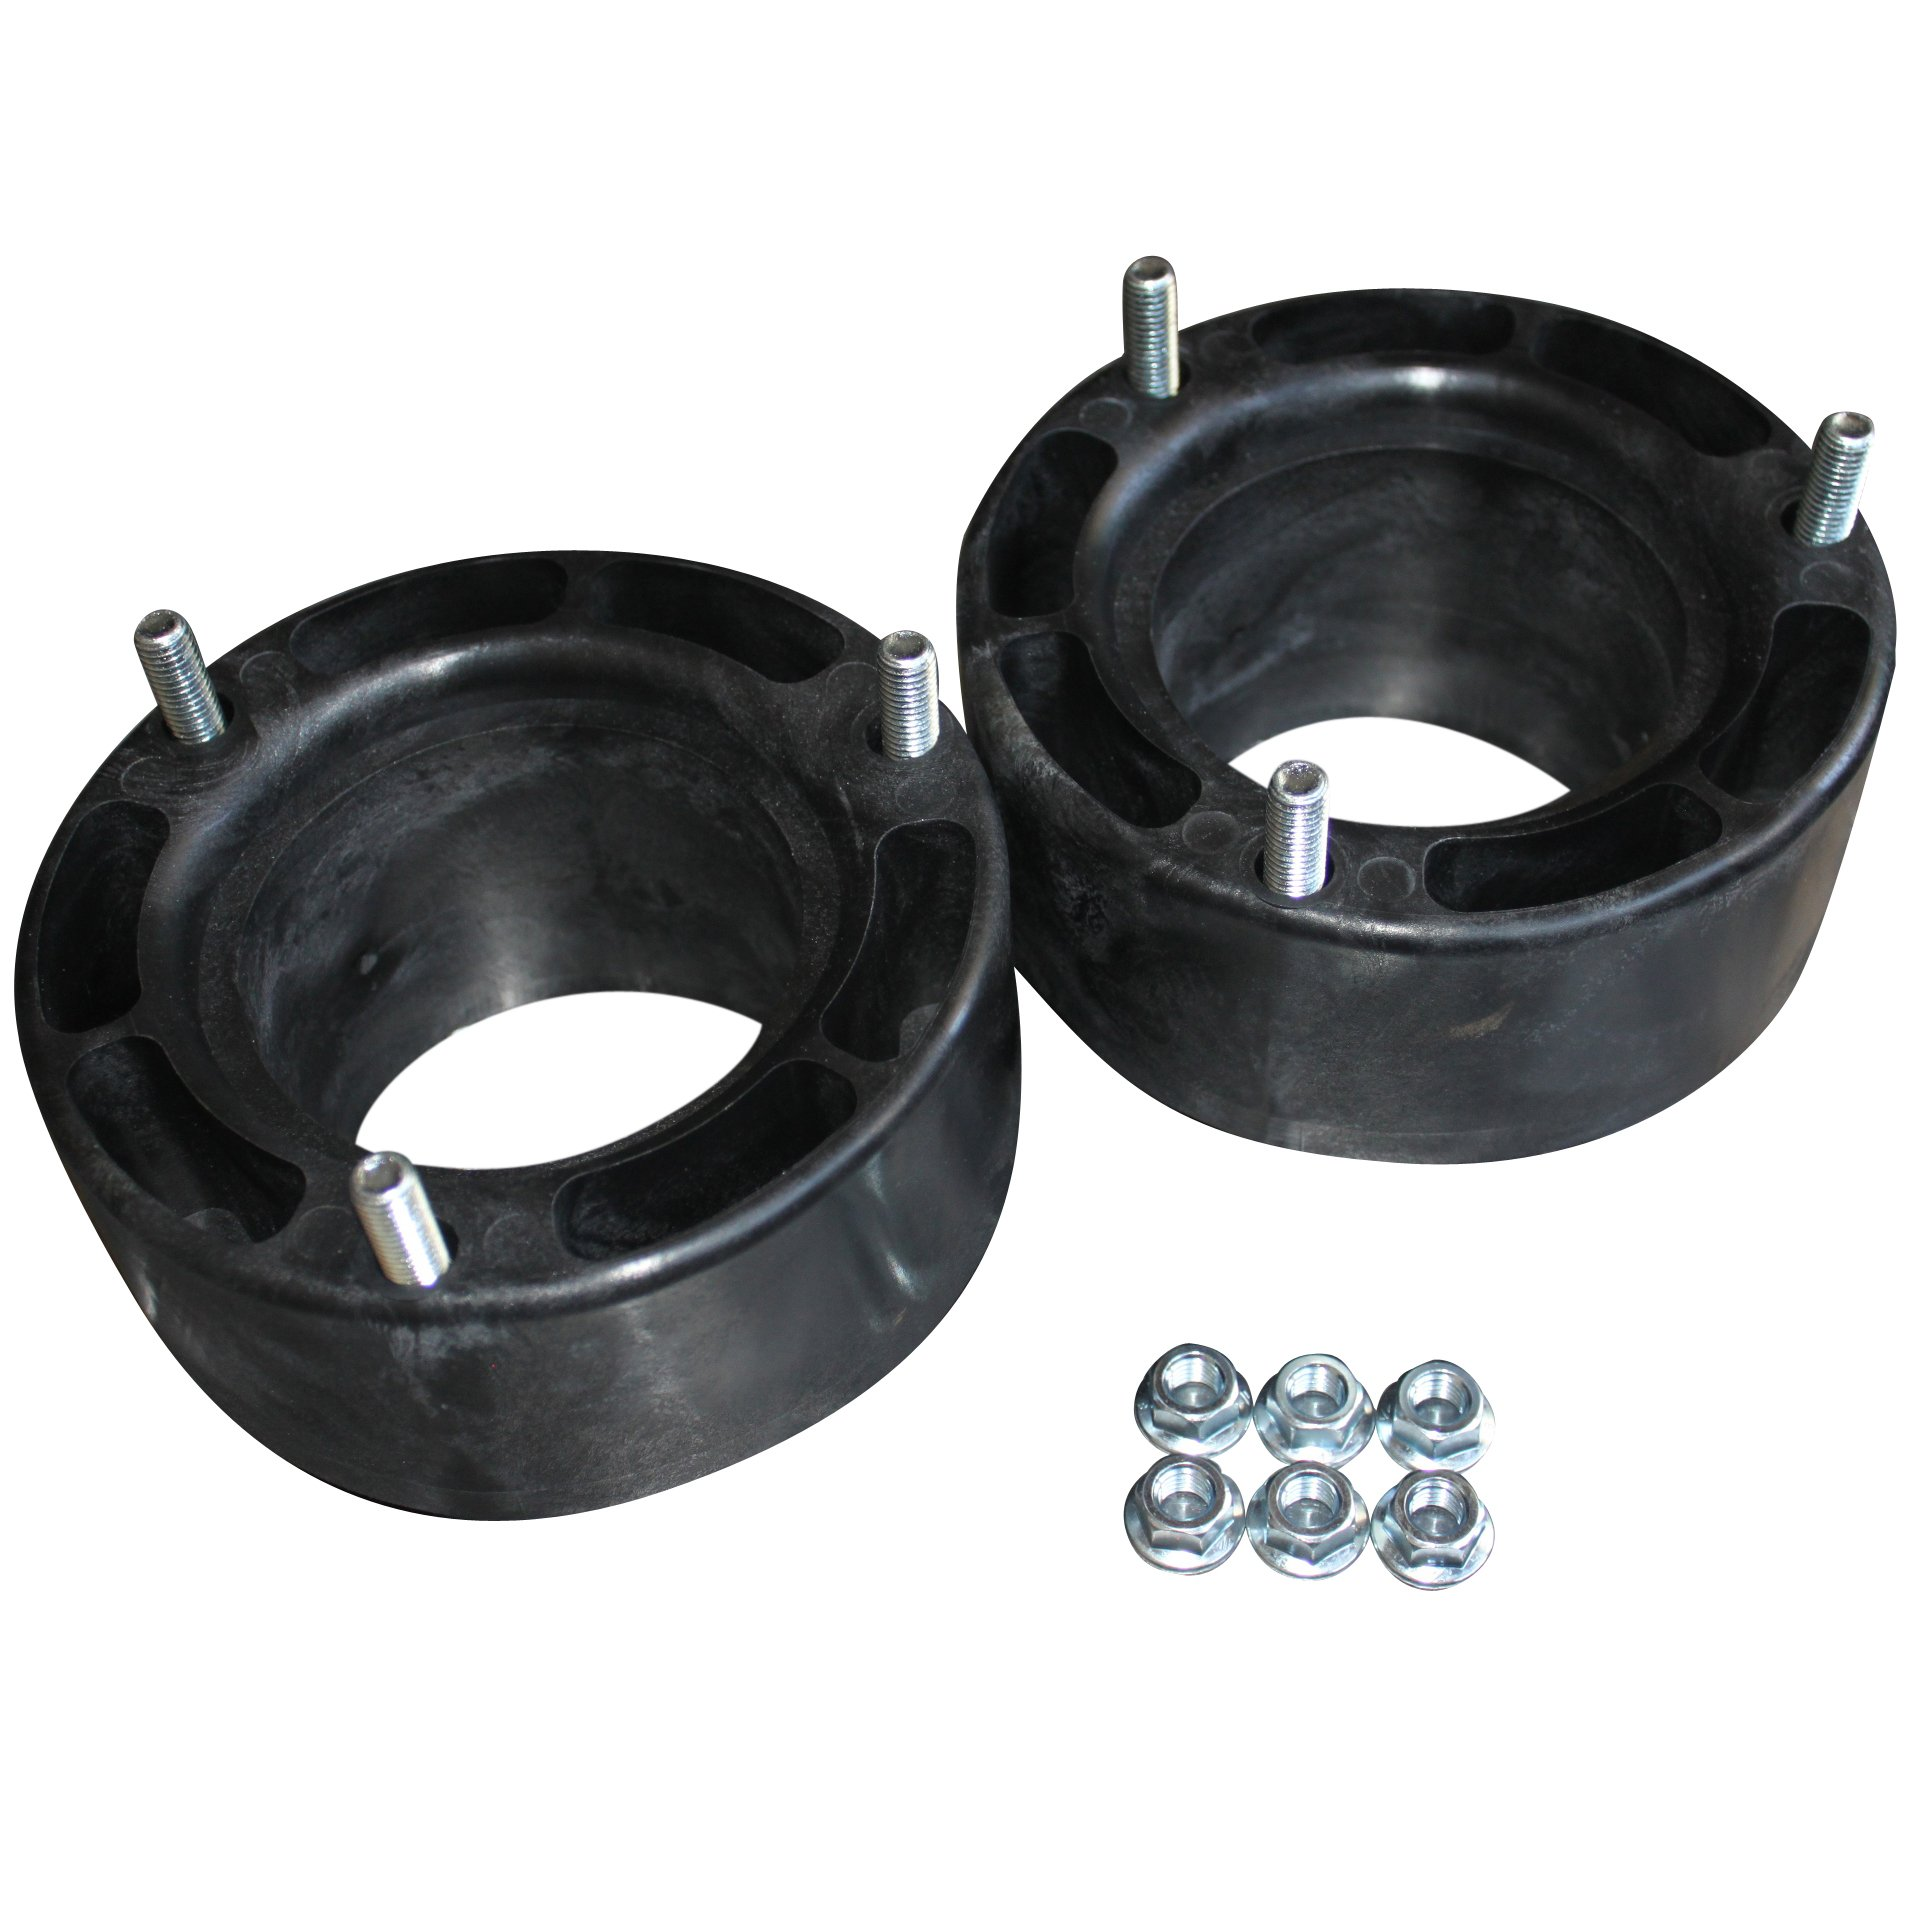 Lift Kit For A 2014 Dodge Ram 2500 Leveling 25 1500 3500 4wd